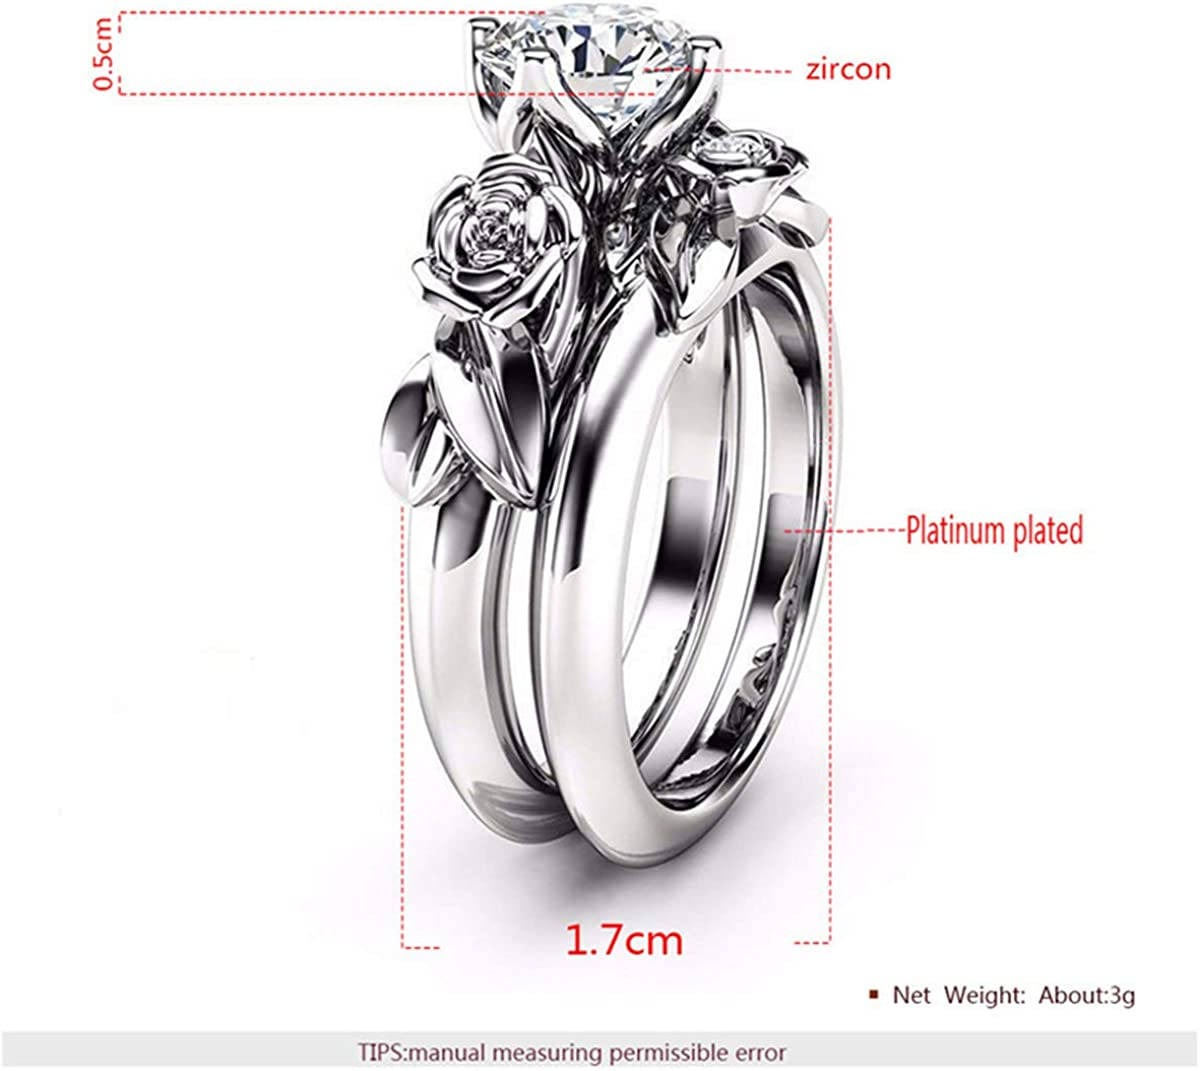 Zzred Cubic Zirconia Rings Wedding Set Ring Eternity Love Flower Band for Women Girl Platinum Plated 2pc